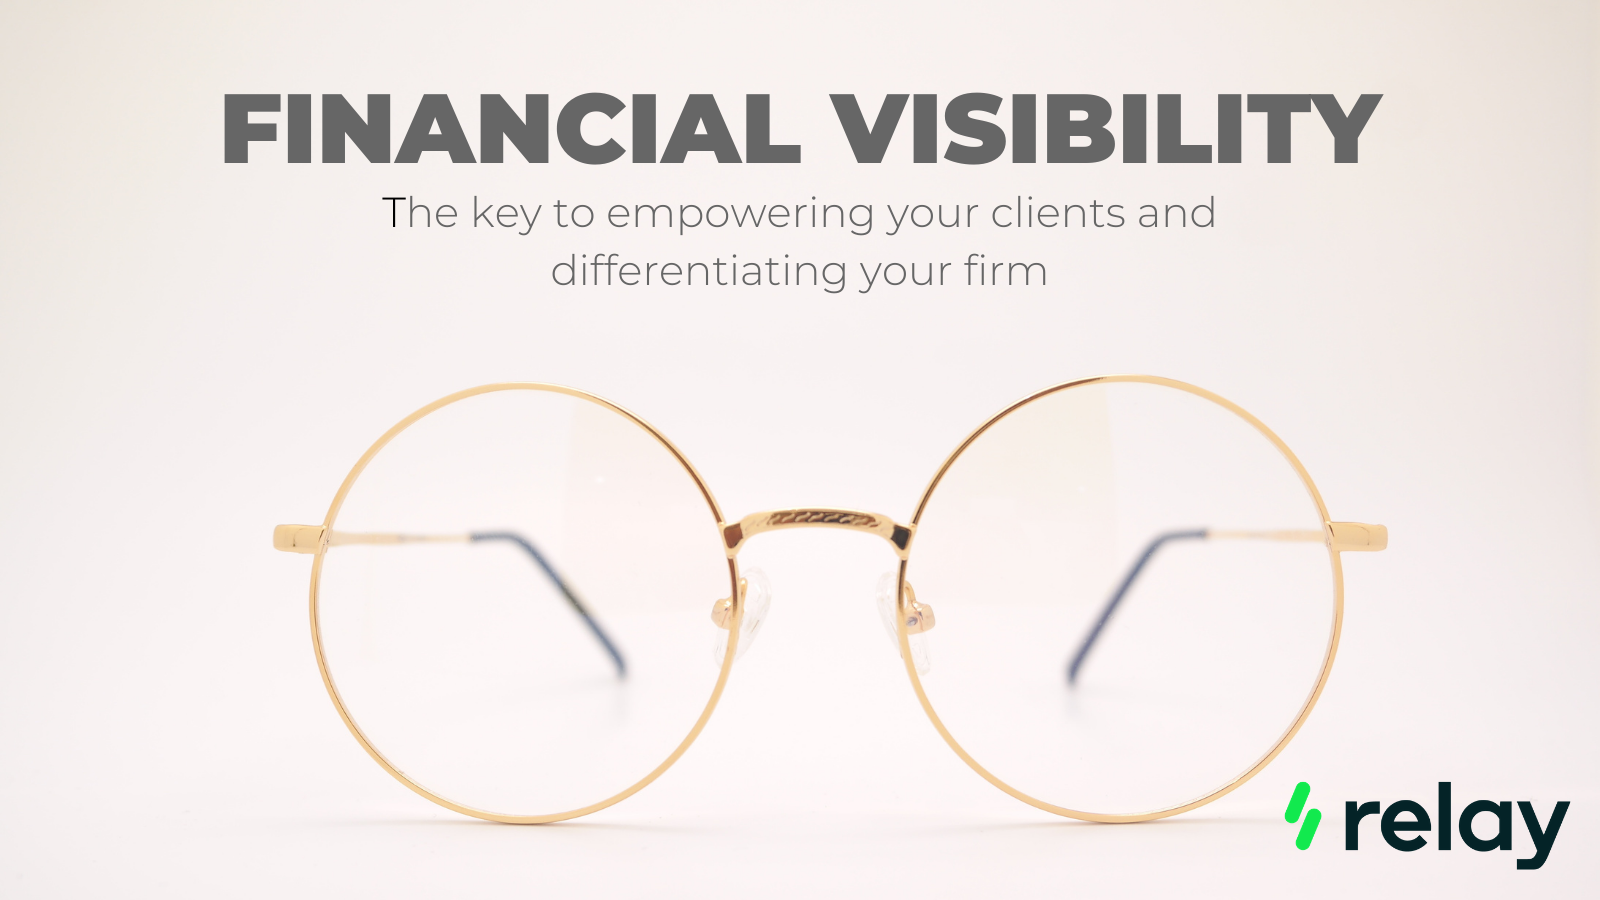 Financial Visibility: The Key to Empowering your Clients and Differentiating your Firm